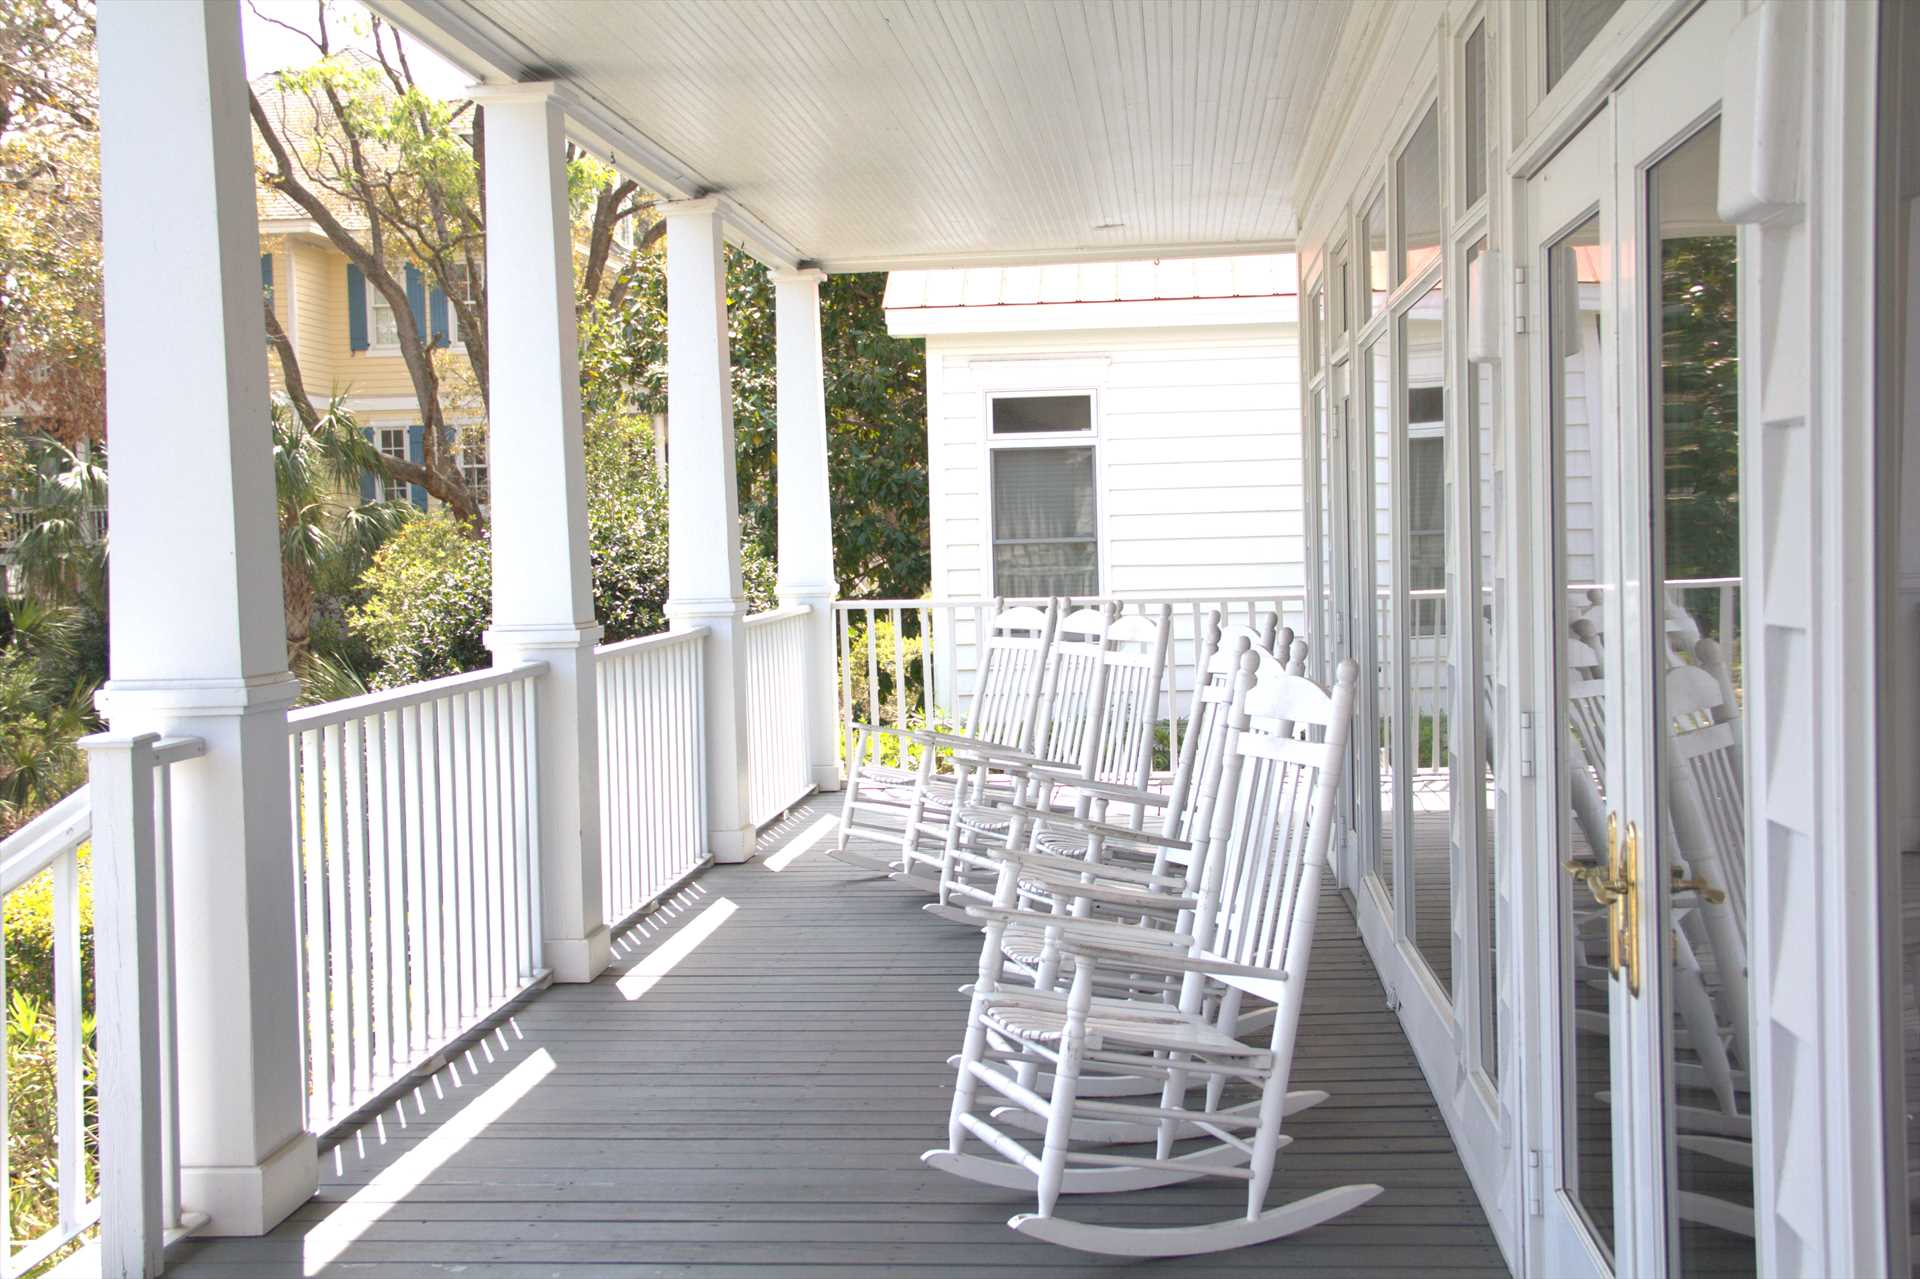 The back porch with rocking chairs